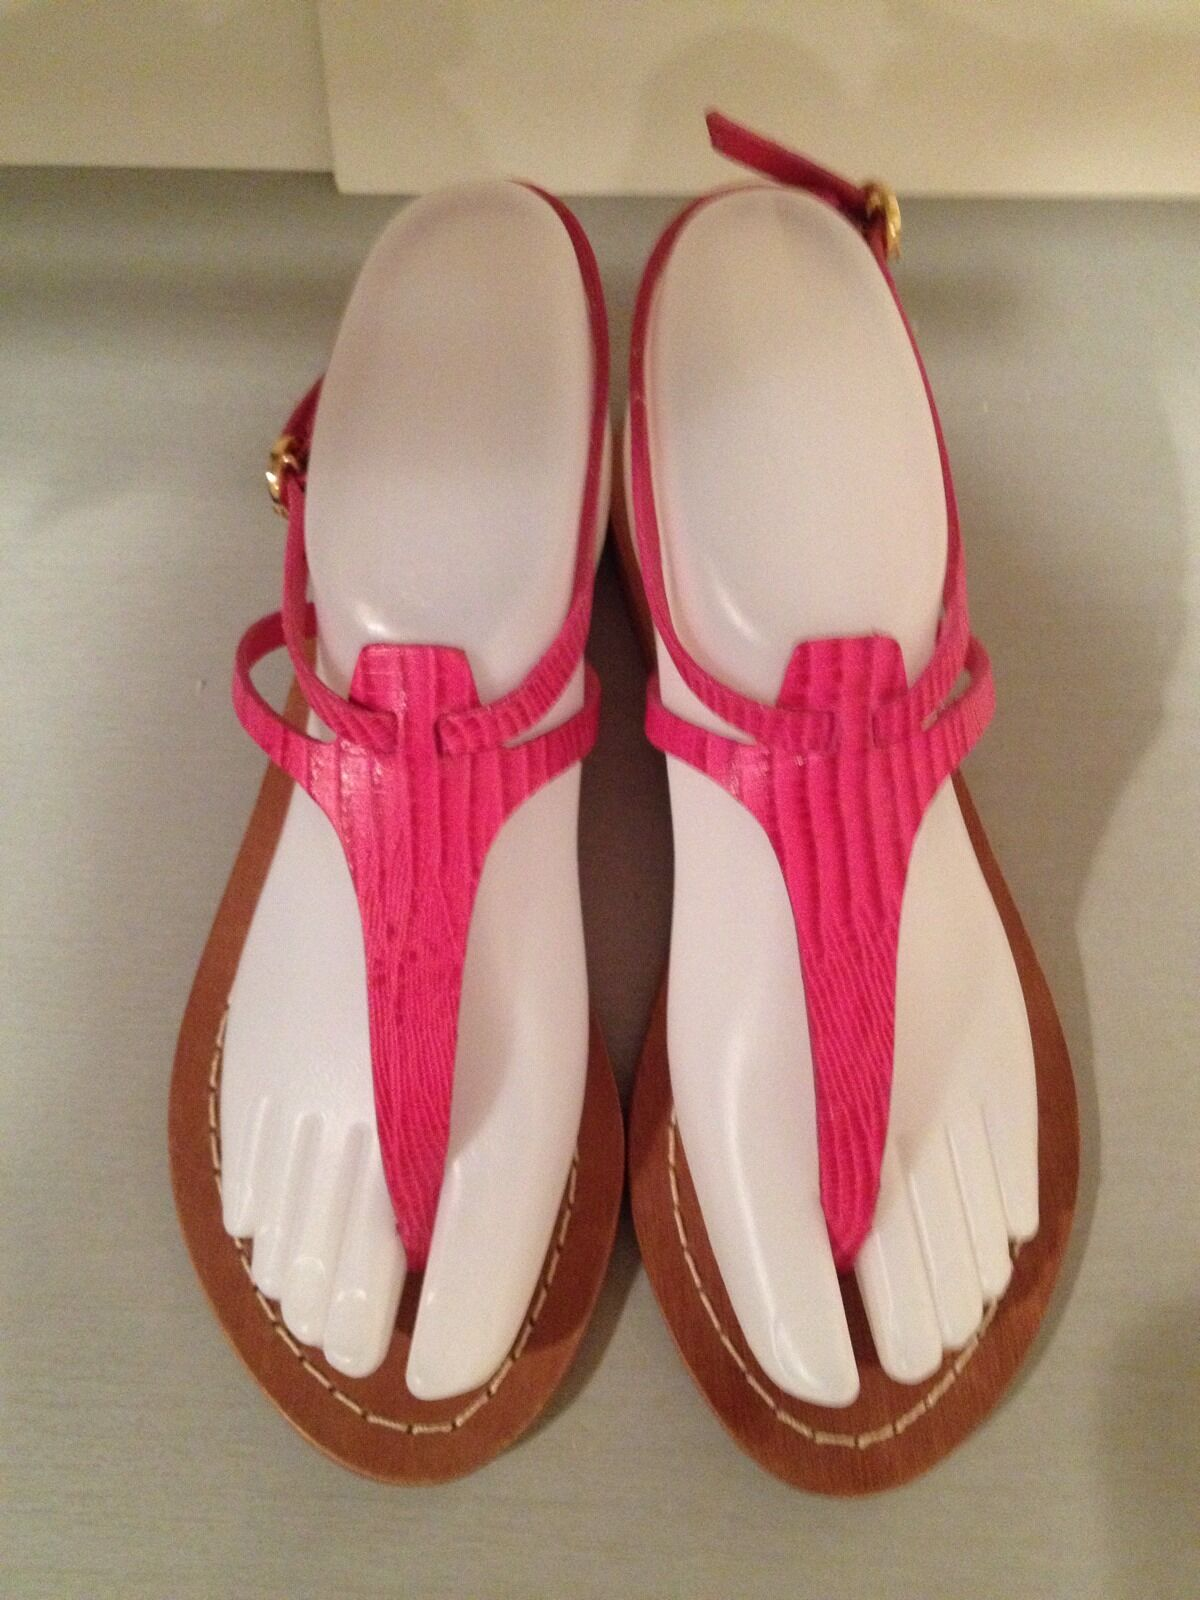 Alice & Olivia Bria Sandals Flat Flip Flops Leather Hot Pink 37/6.5 M New $220